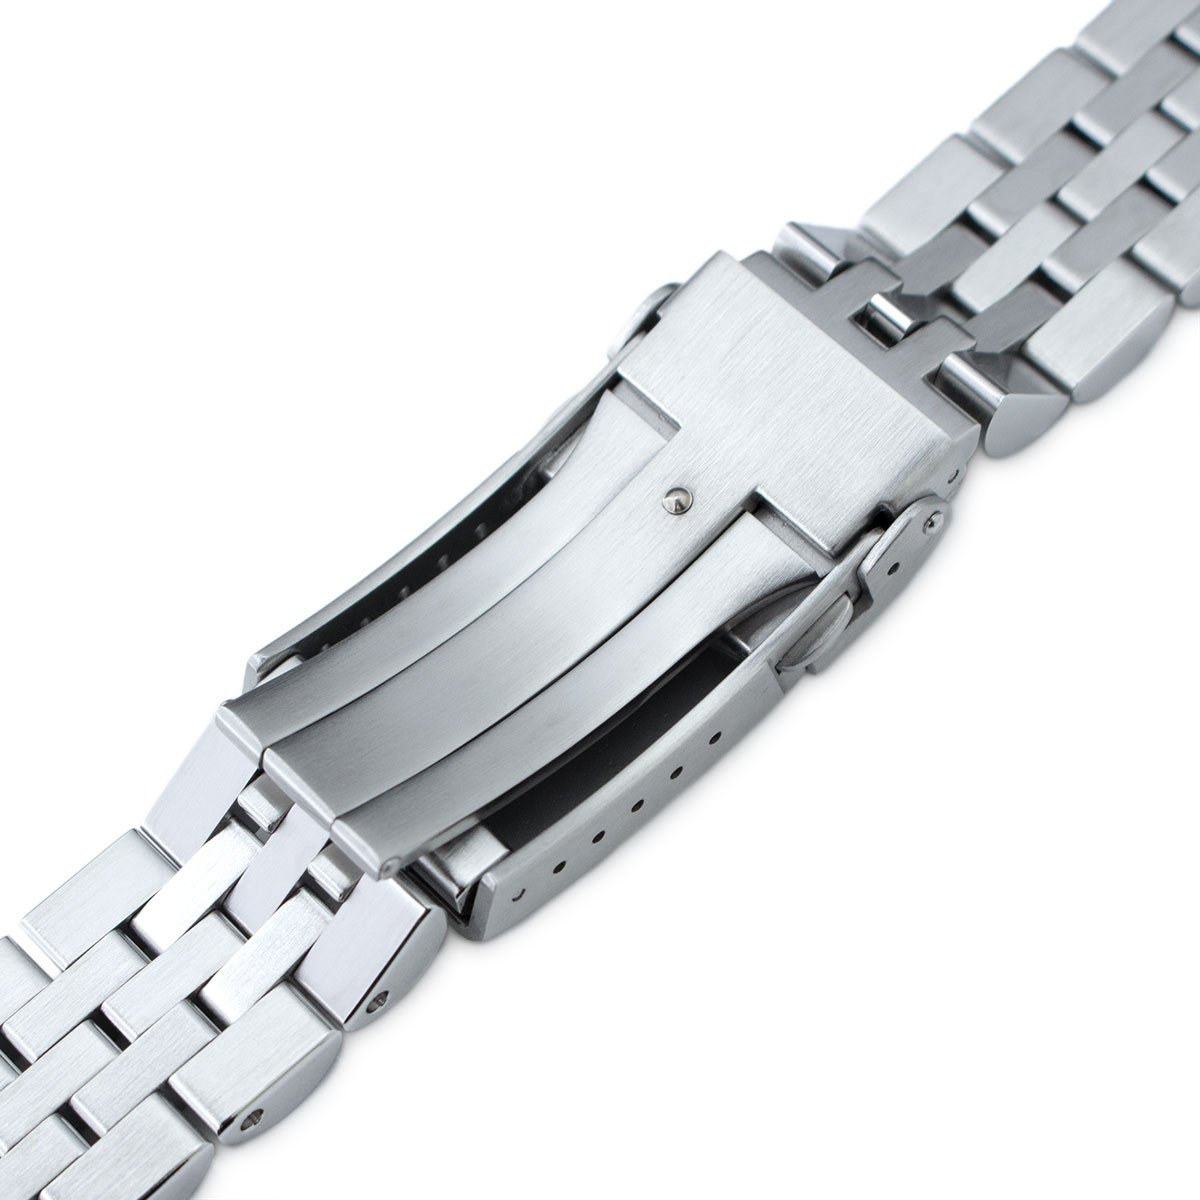 20mm Angus Jubilee Watch Bracelet for Seiko MM300 SBDX001, Brushed/Polished, V-Clasp by Seiko Replacement by MiLTAT (Image #6)